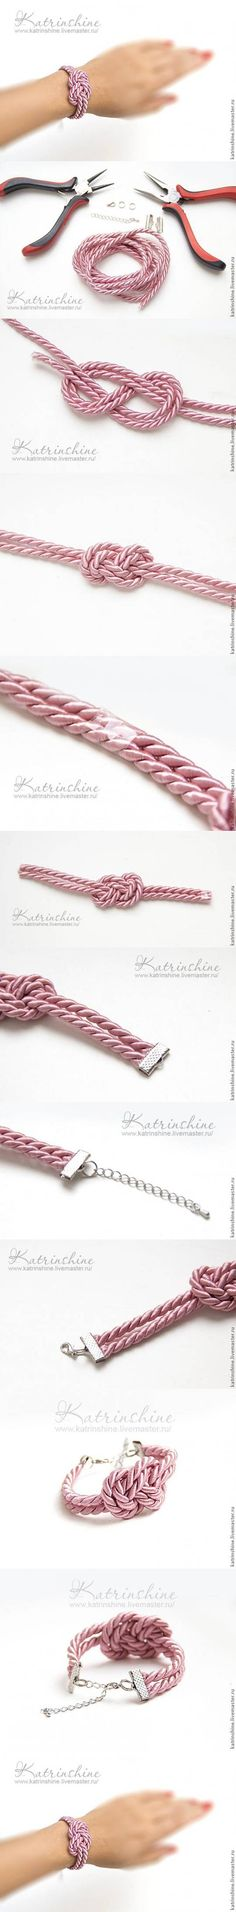 DIY Bracelet with a Knot of Silk Cord DIY Projects